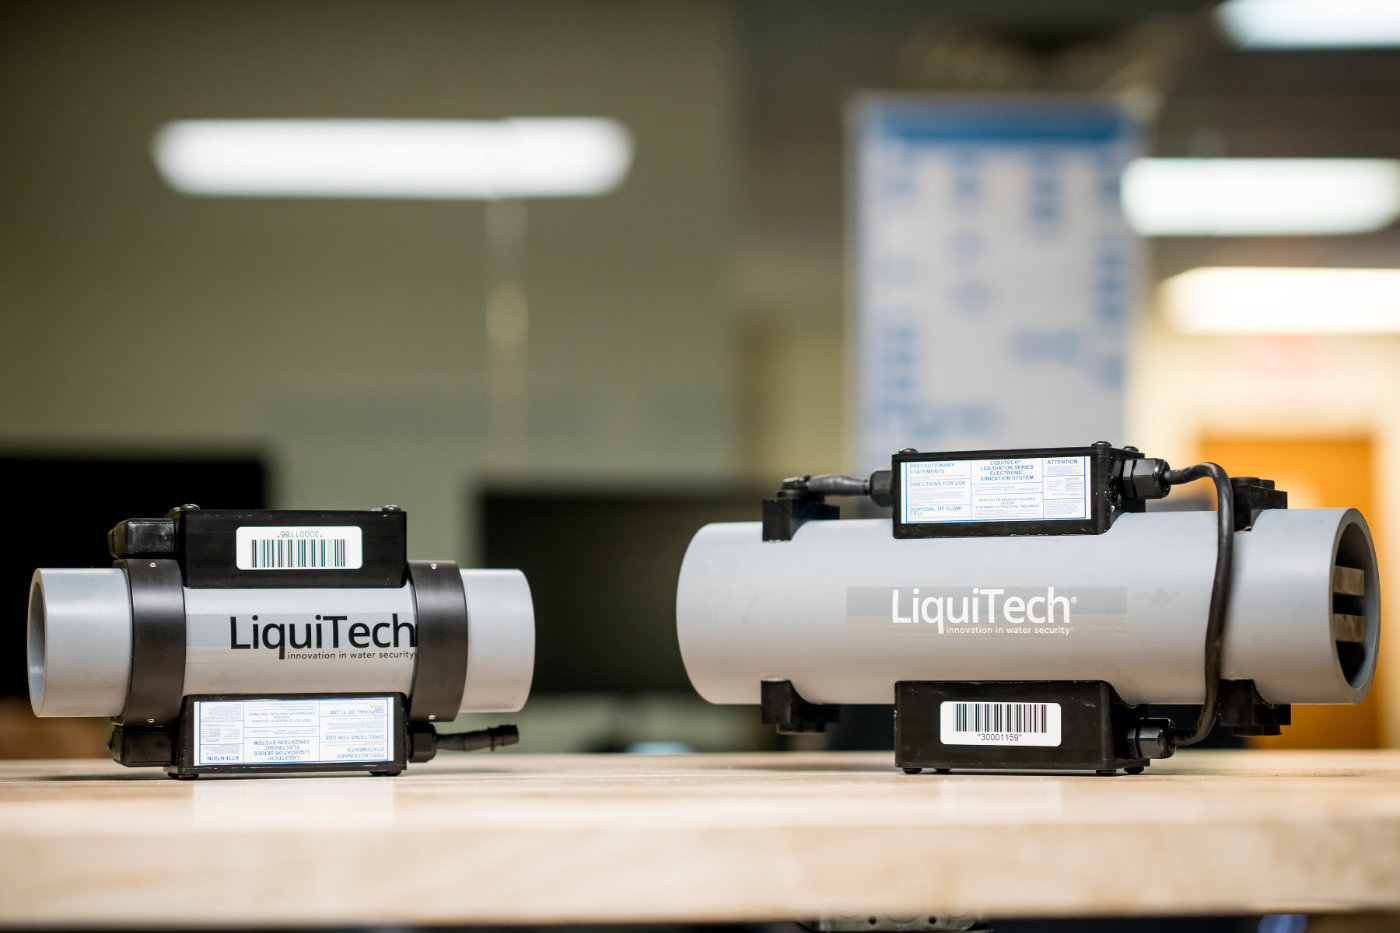 Photo of a LiquiTech product